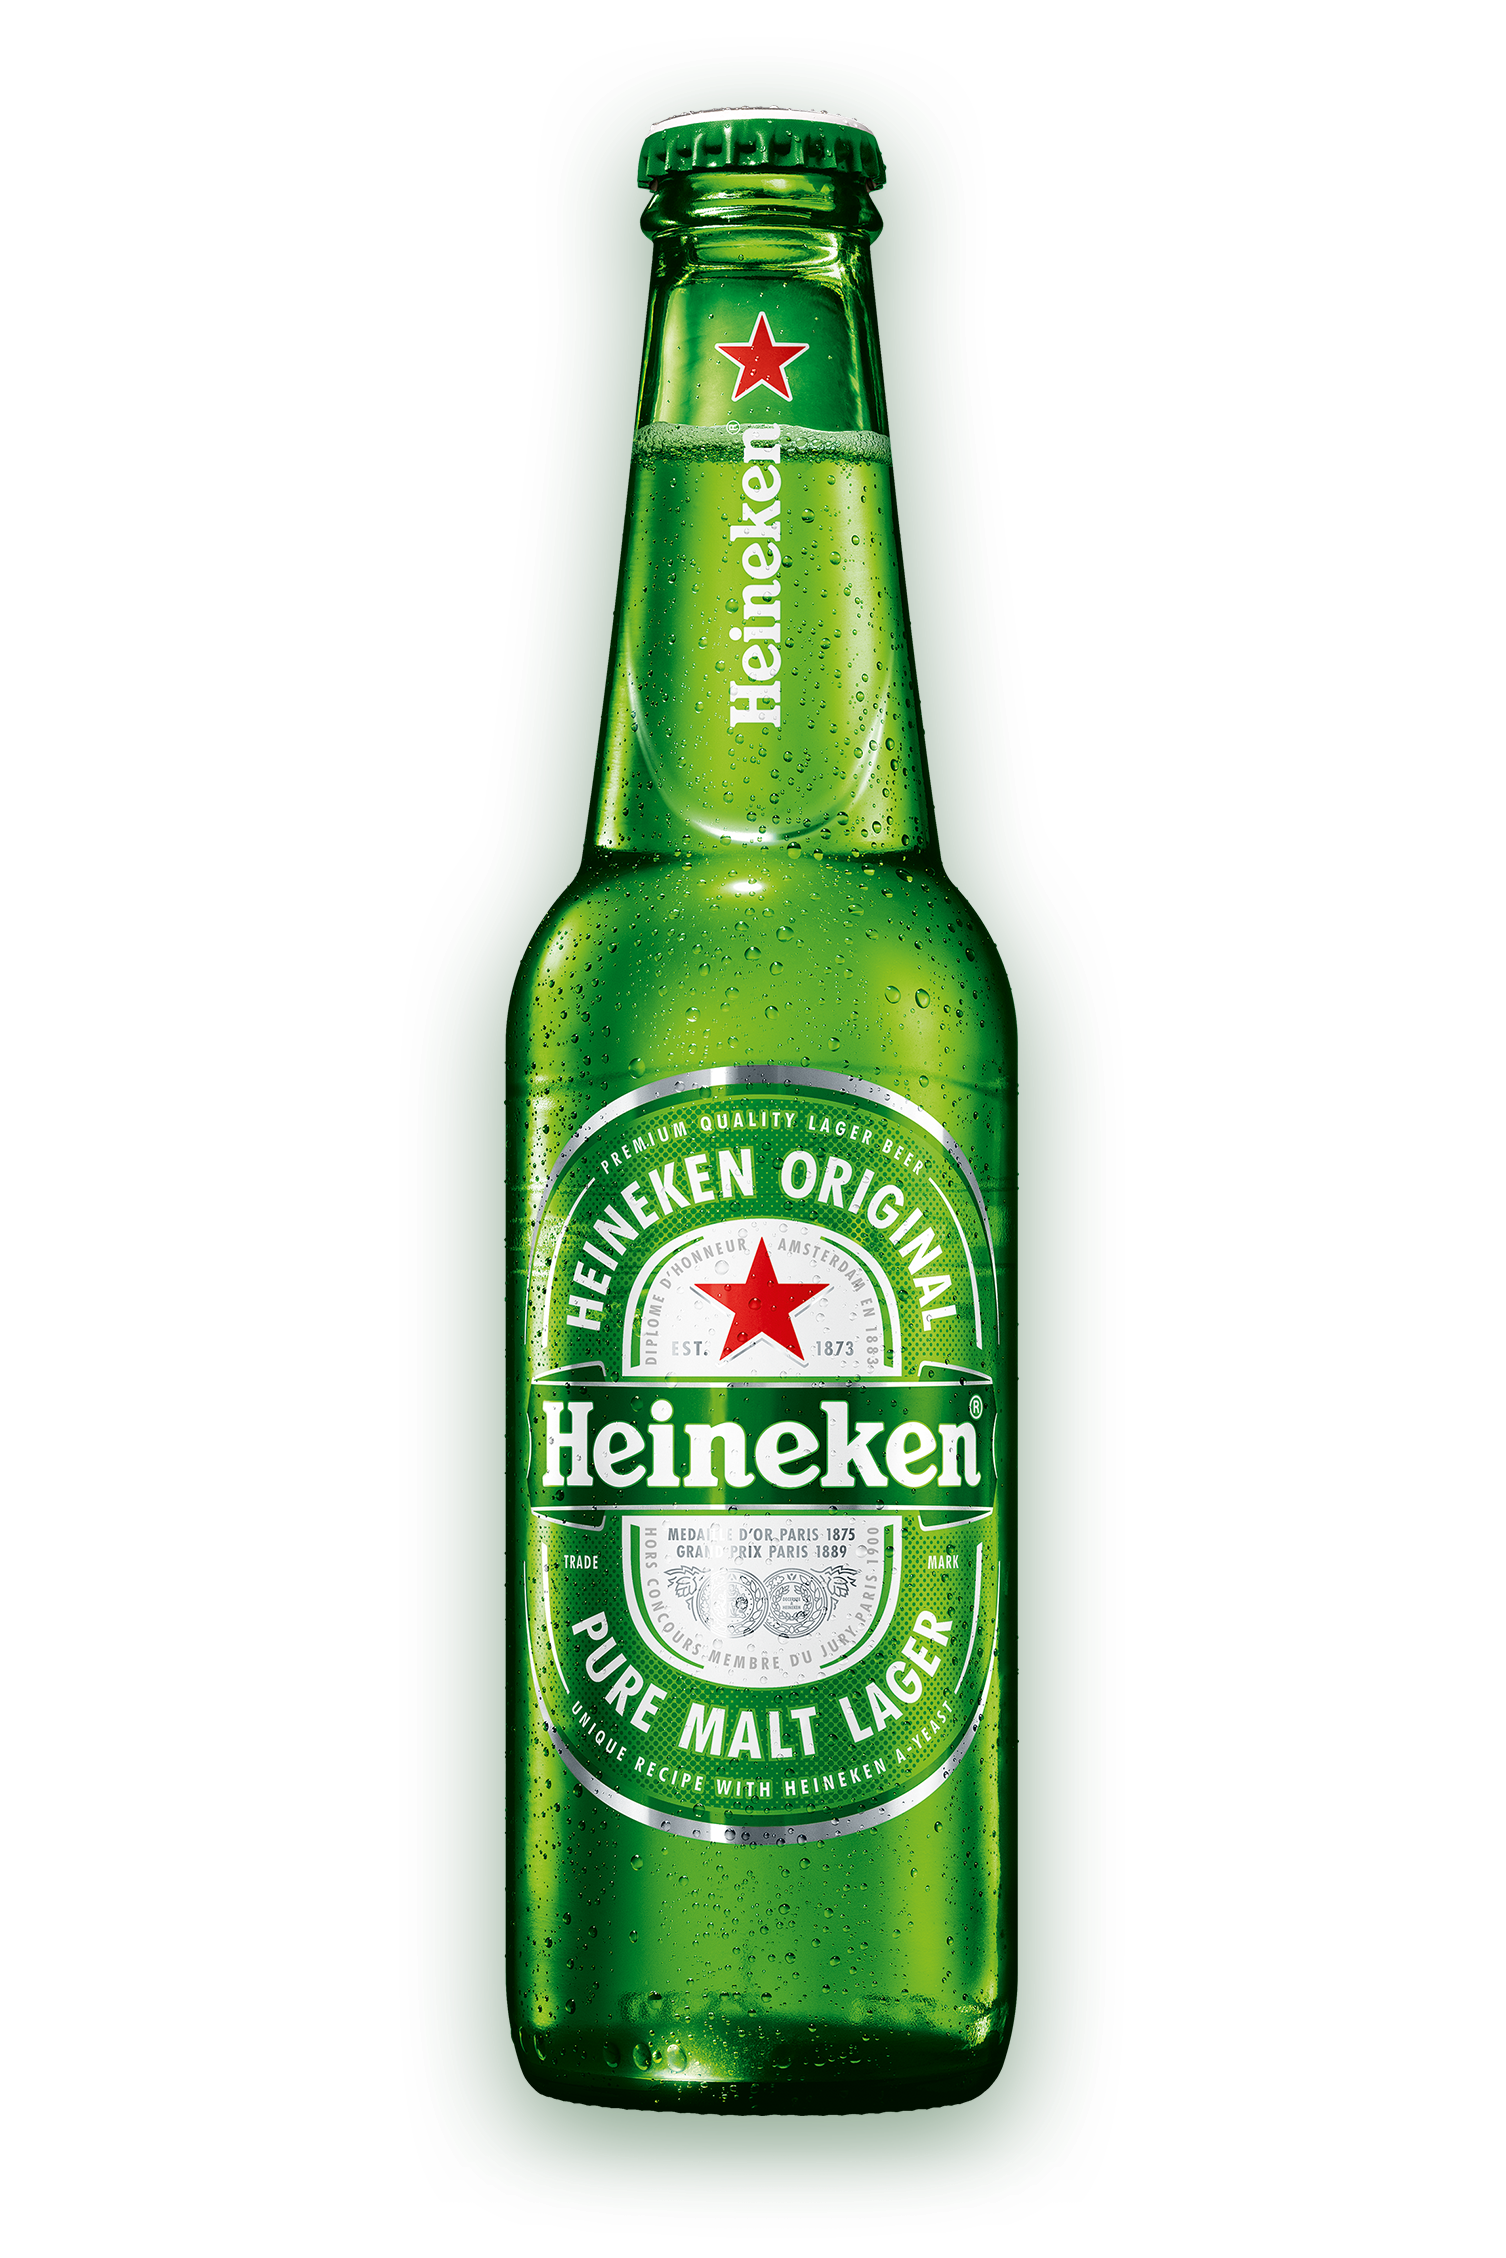 Heineken Original Bottle